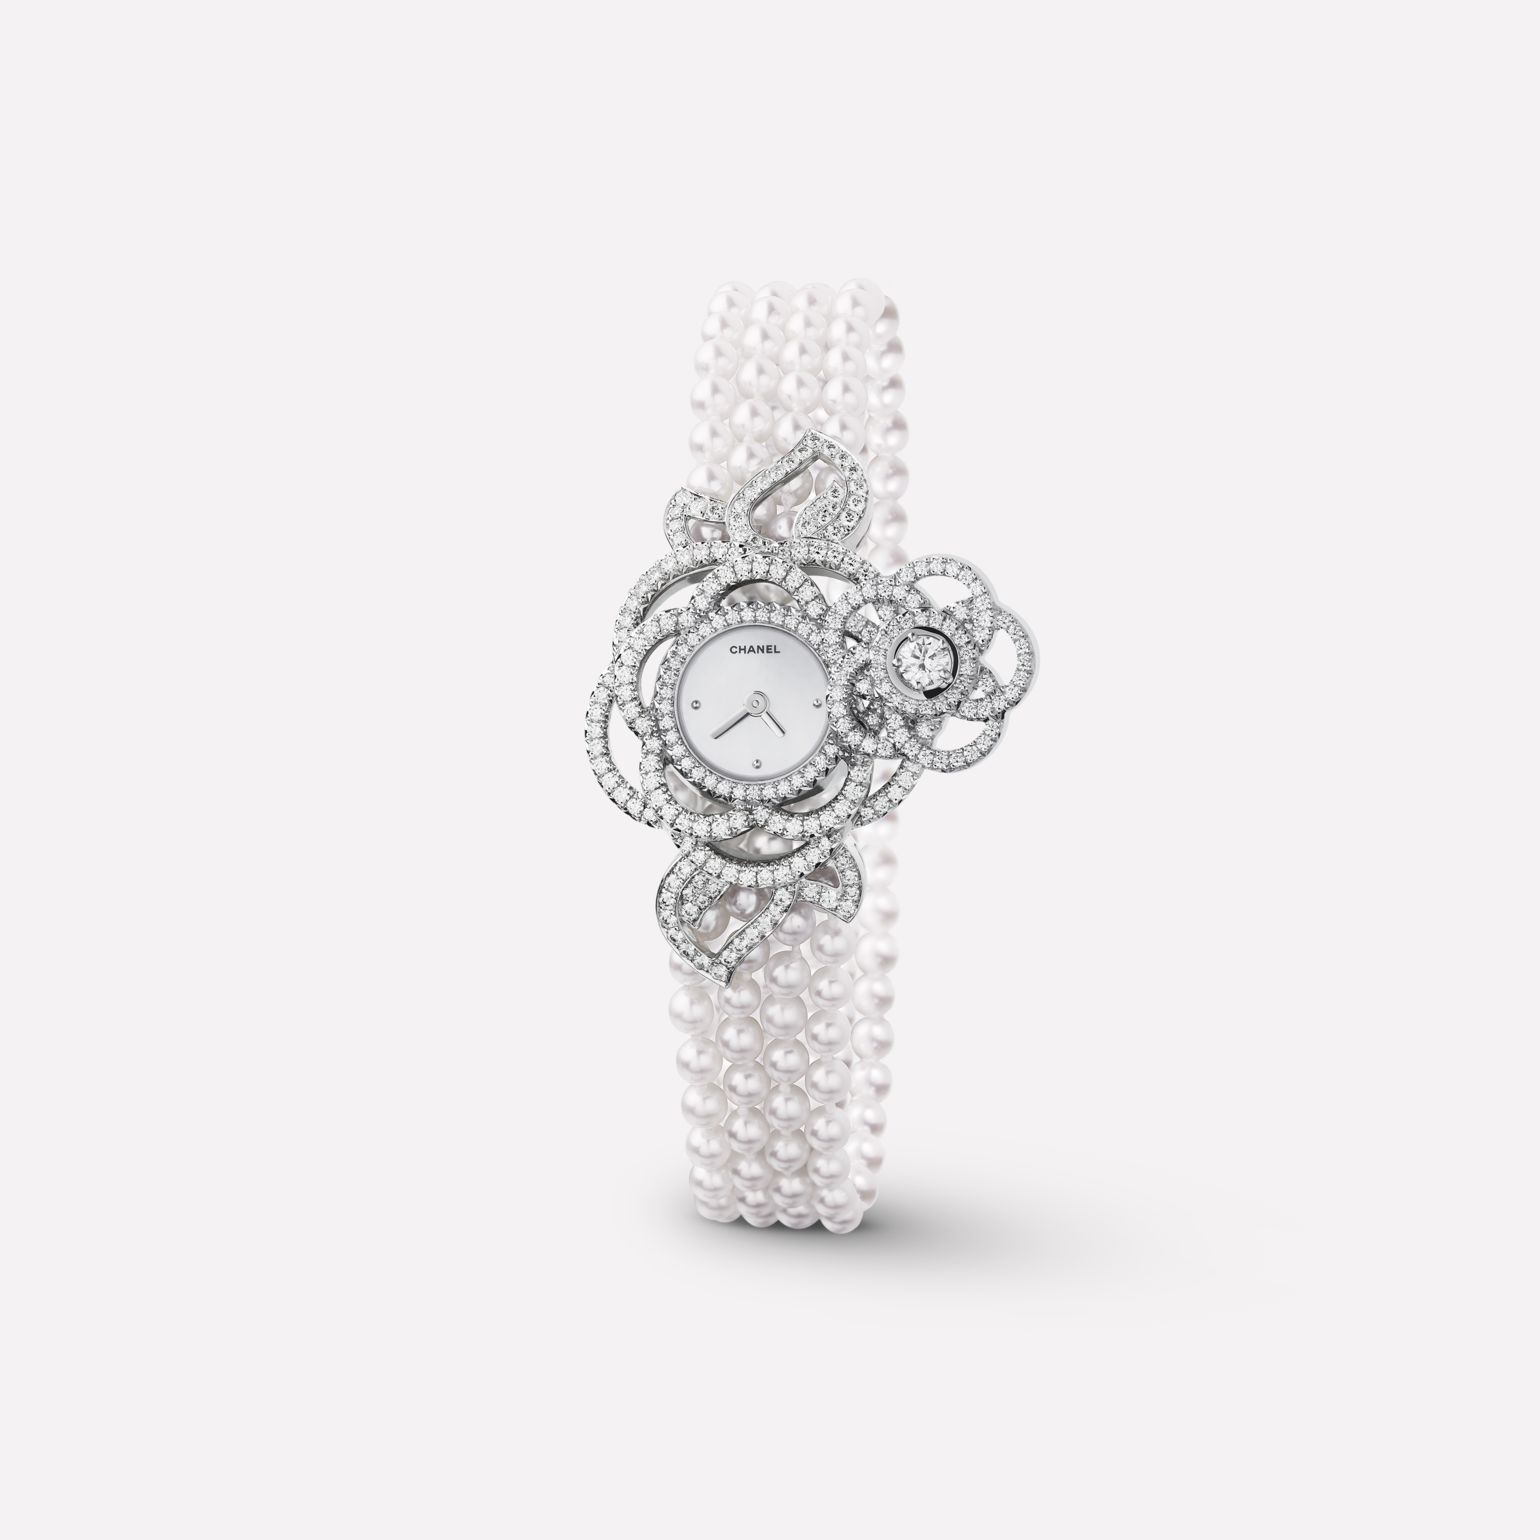 Camélia Jewelry Watch Secret watch with embroidered Camélia Brodé motif, medium version, in 18K white gold, diamonds, and cultured pearls